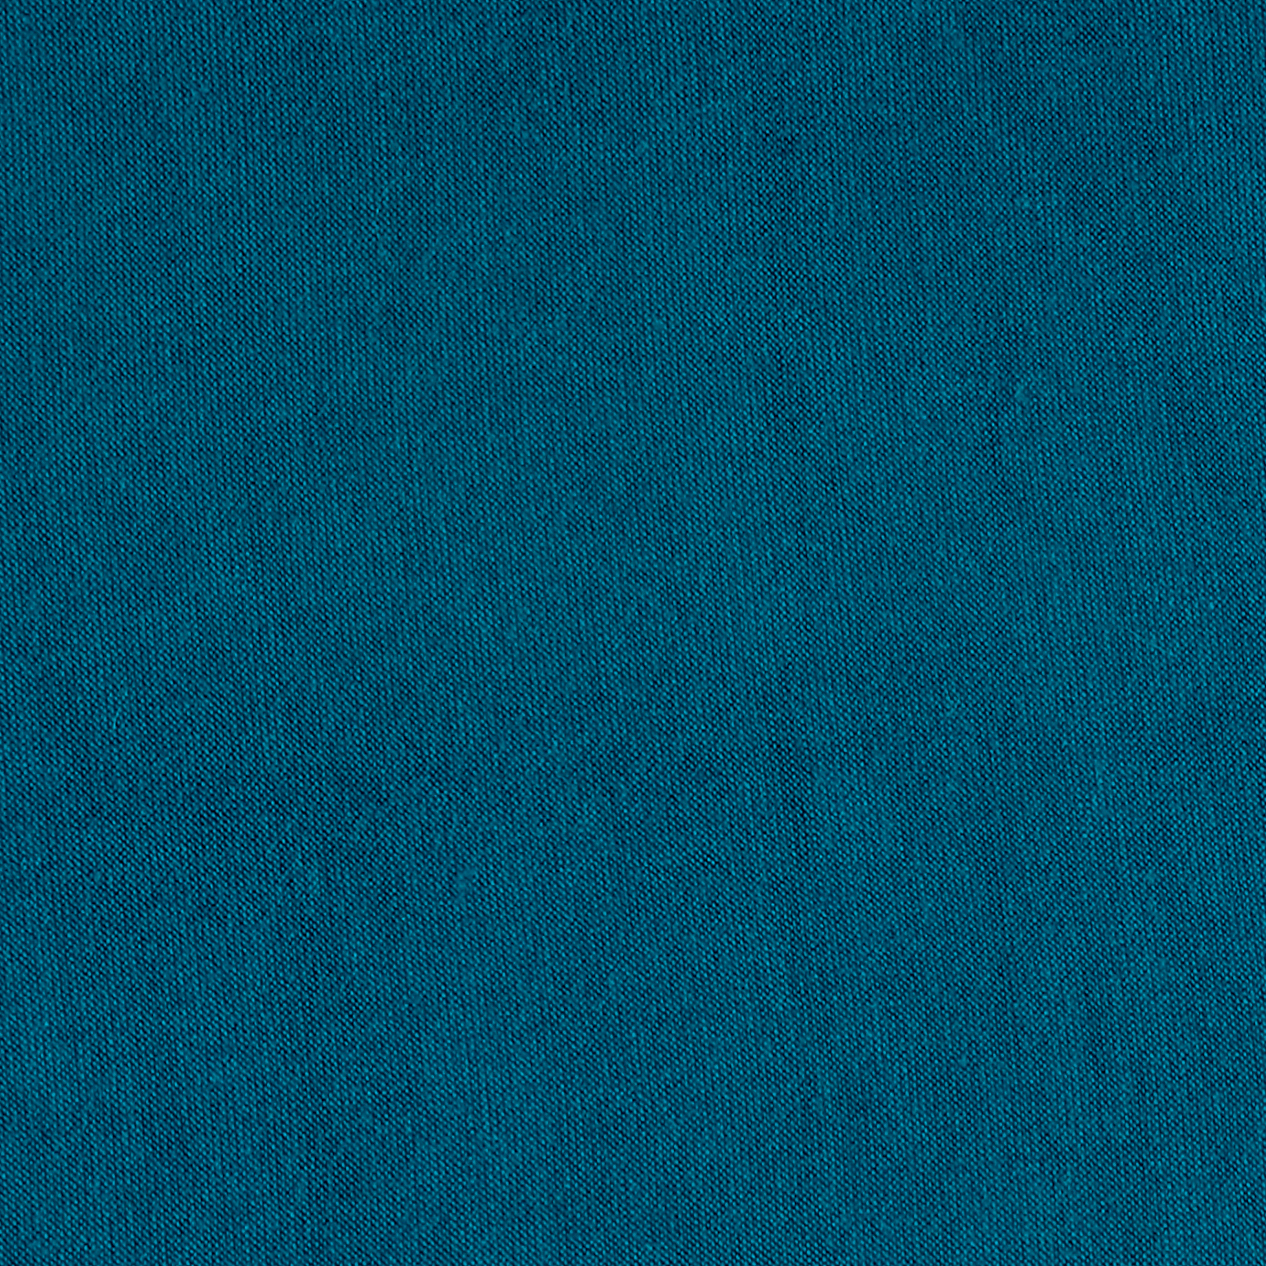 Jersey Knit Solid Royal Teal Fabric